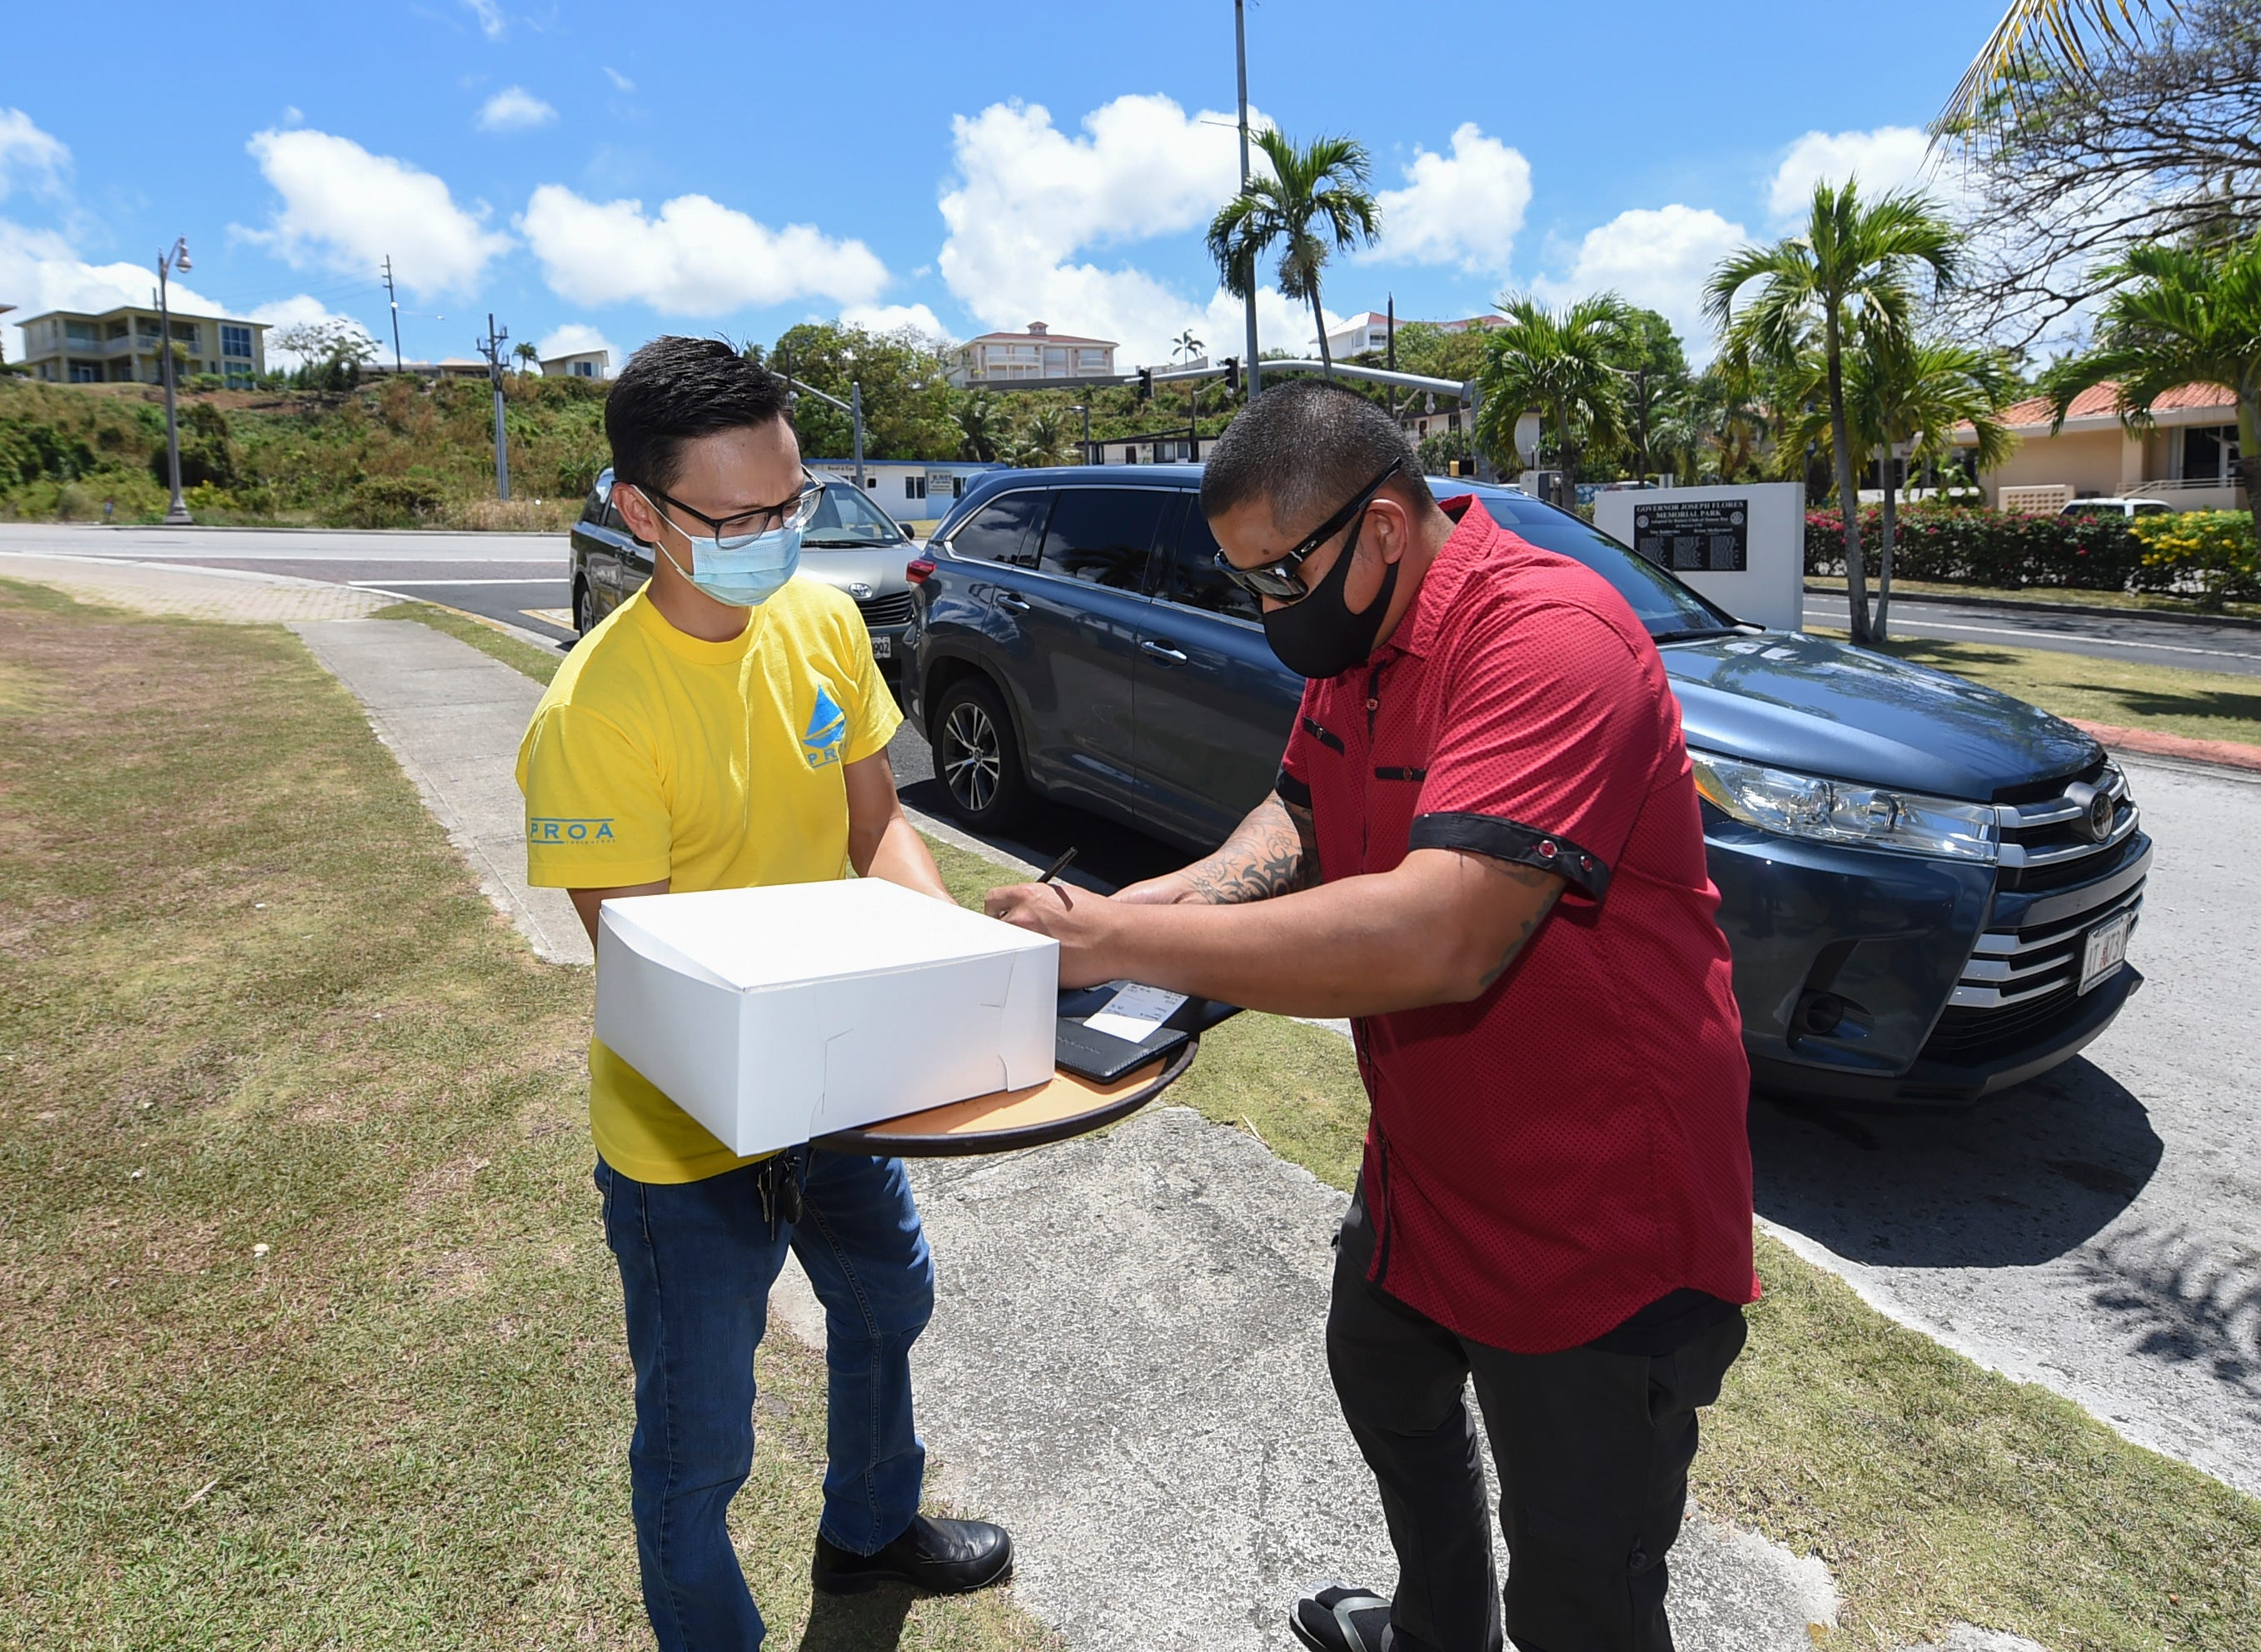 Proa Restaurant employee Vince Mendiola, left, serves Paul Muña his taro cheesecake order outside the Tumon eatery on April 12, 2020. Muña ordered the cheesecake to bring back home for a quarantined Easter celebration with his family.